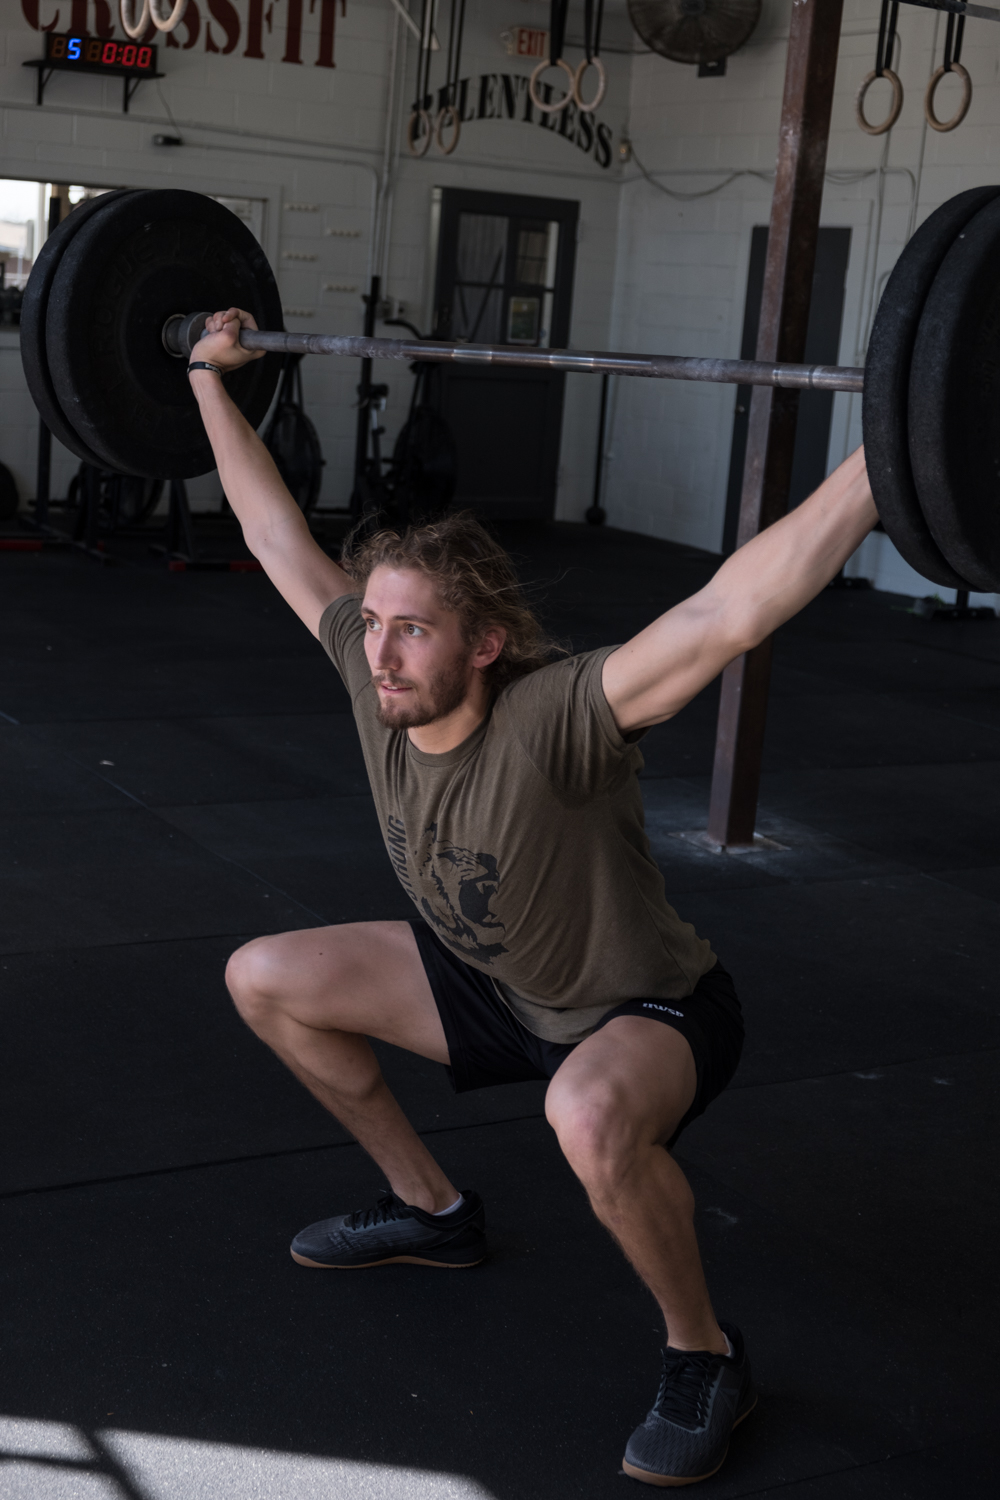 Hanley completes and olympic lift.